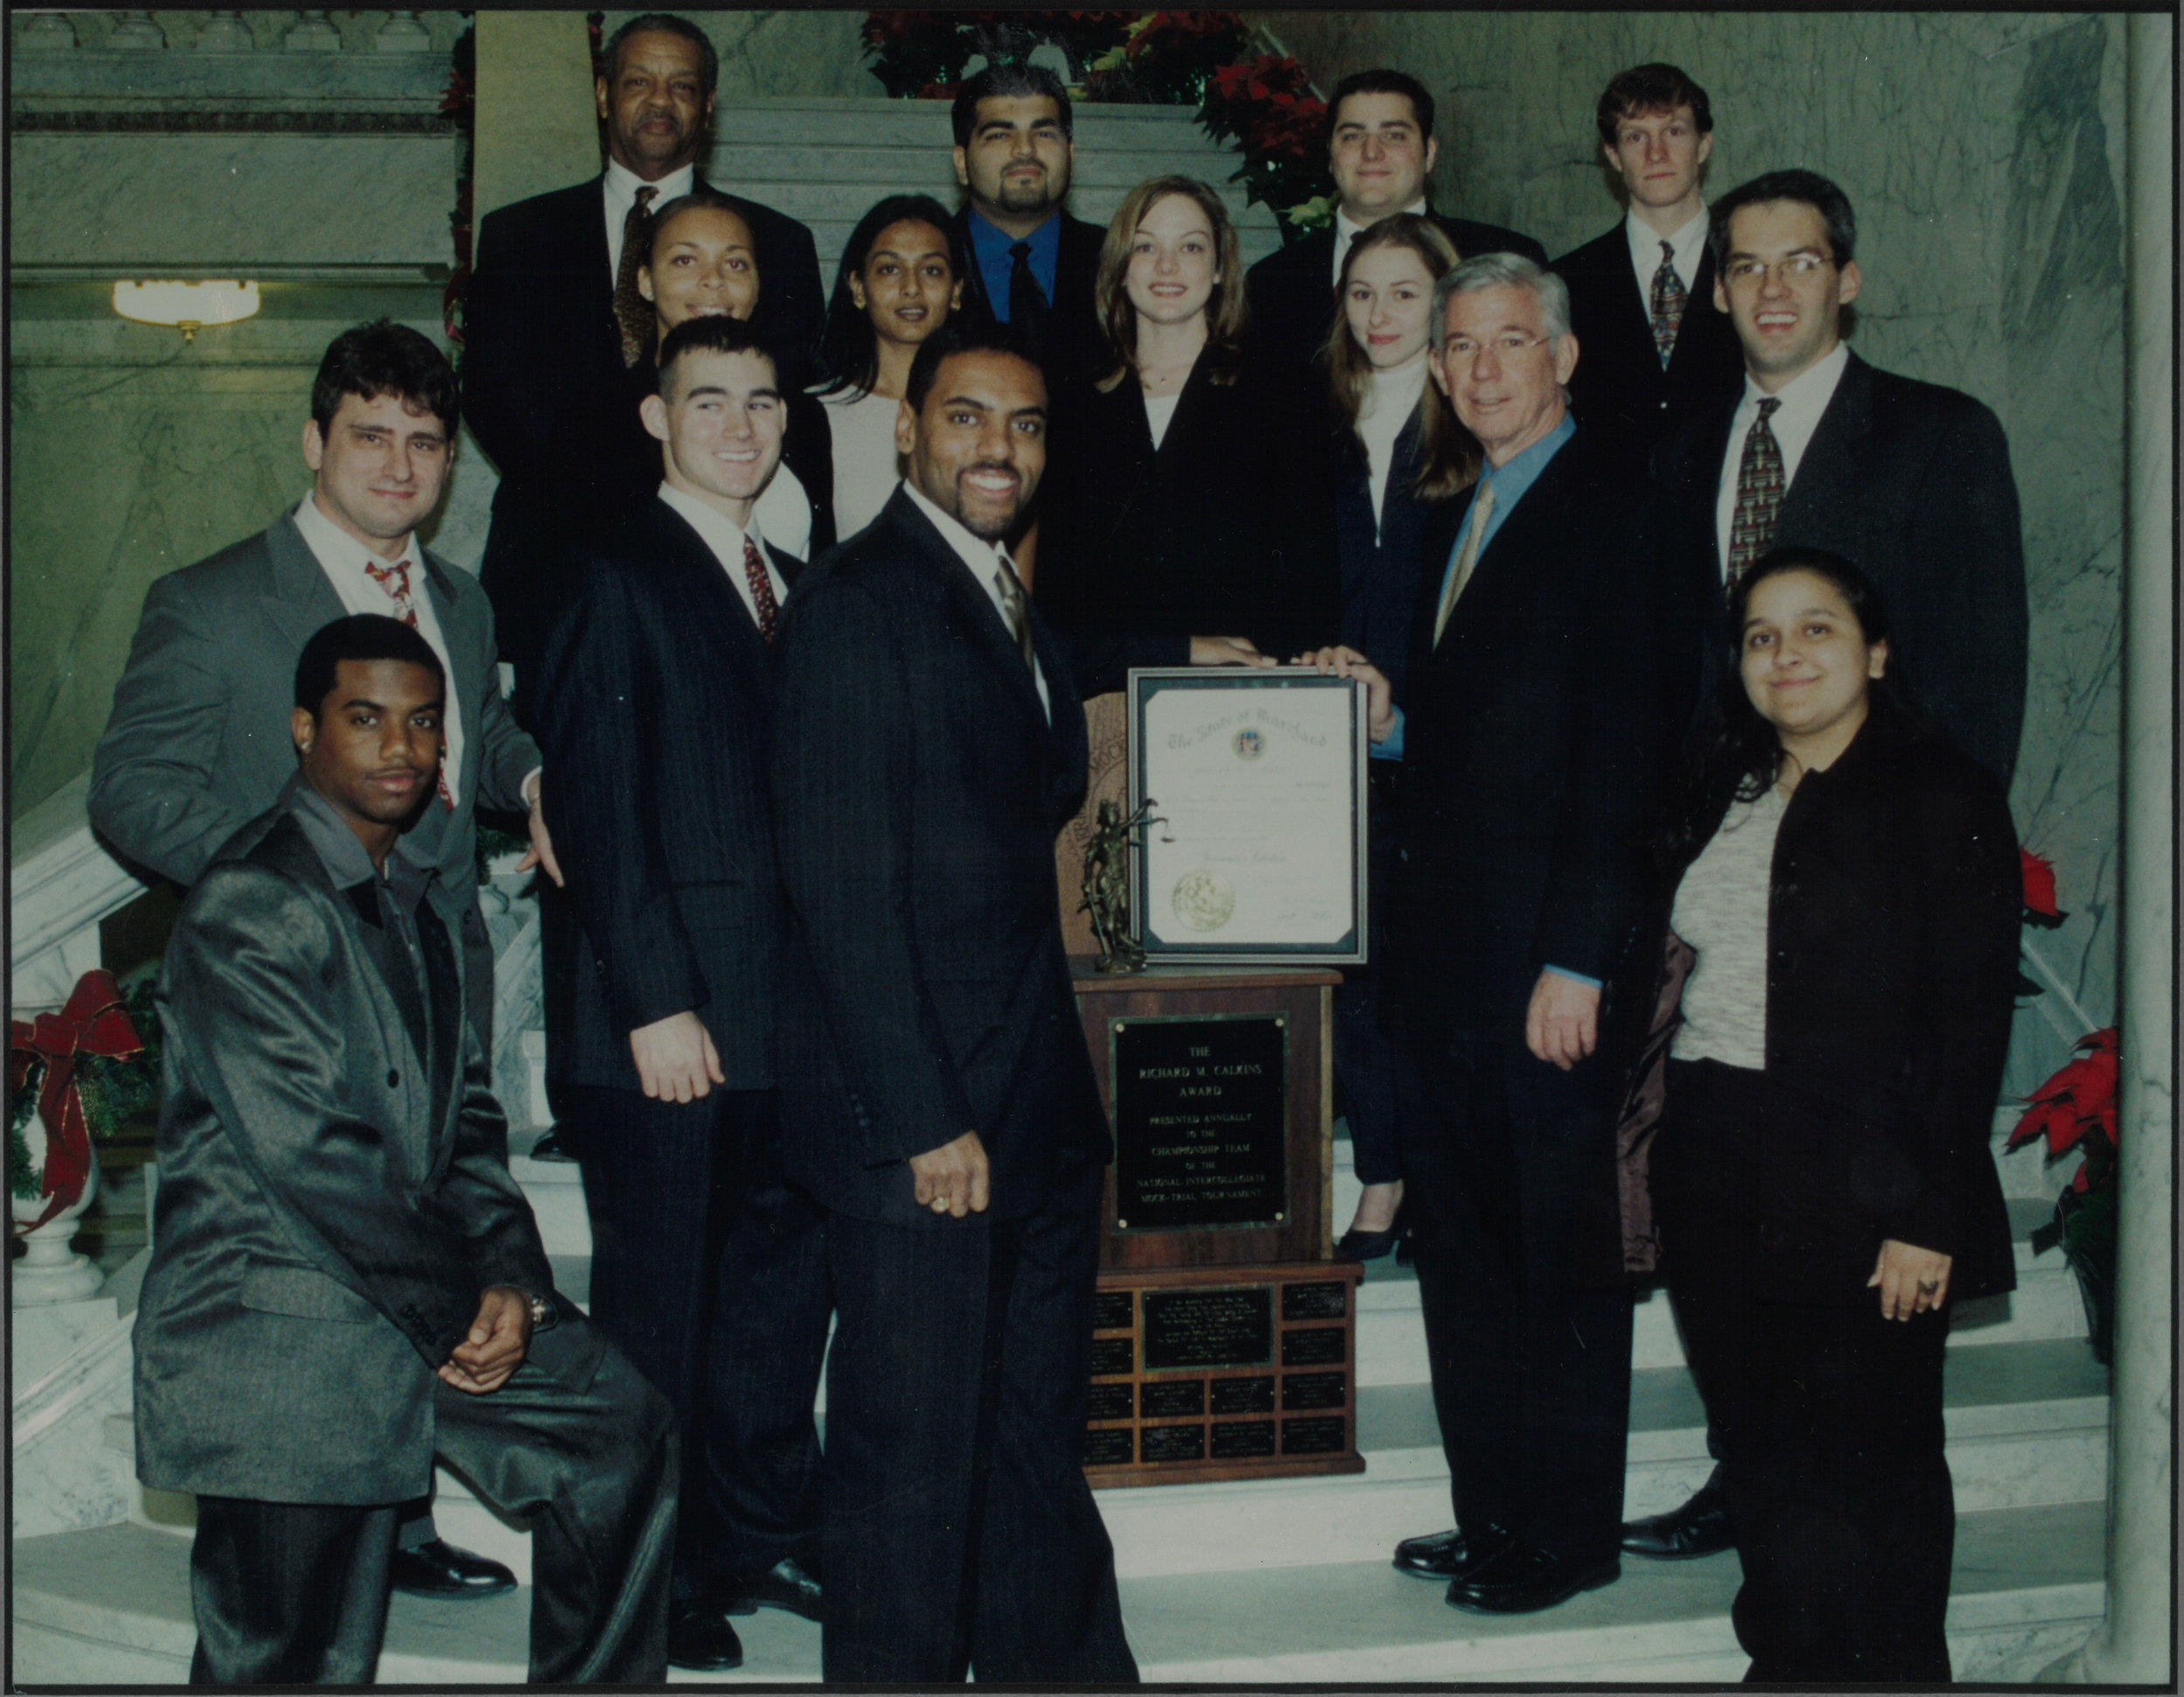 National Champions - After winning the national championship in 2000, Maryland Mock Trial team members and coaches were honored by the Maryland House of Delegates and Governor Paris Glendening.